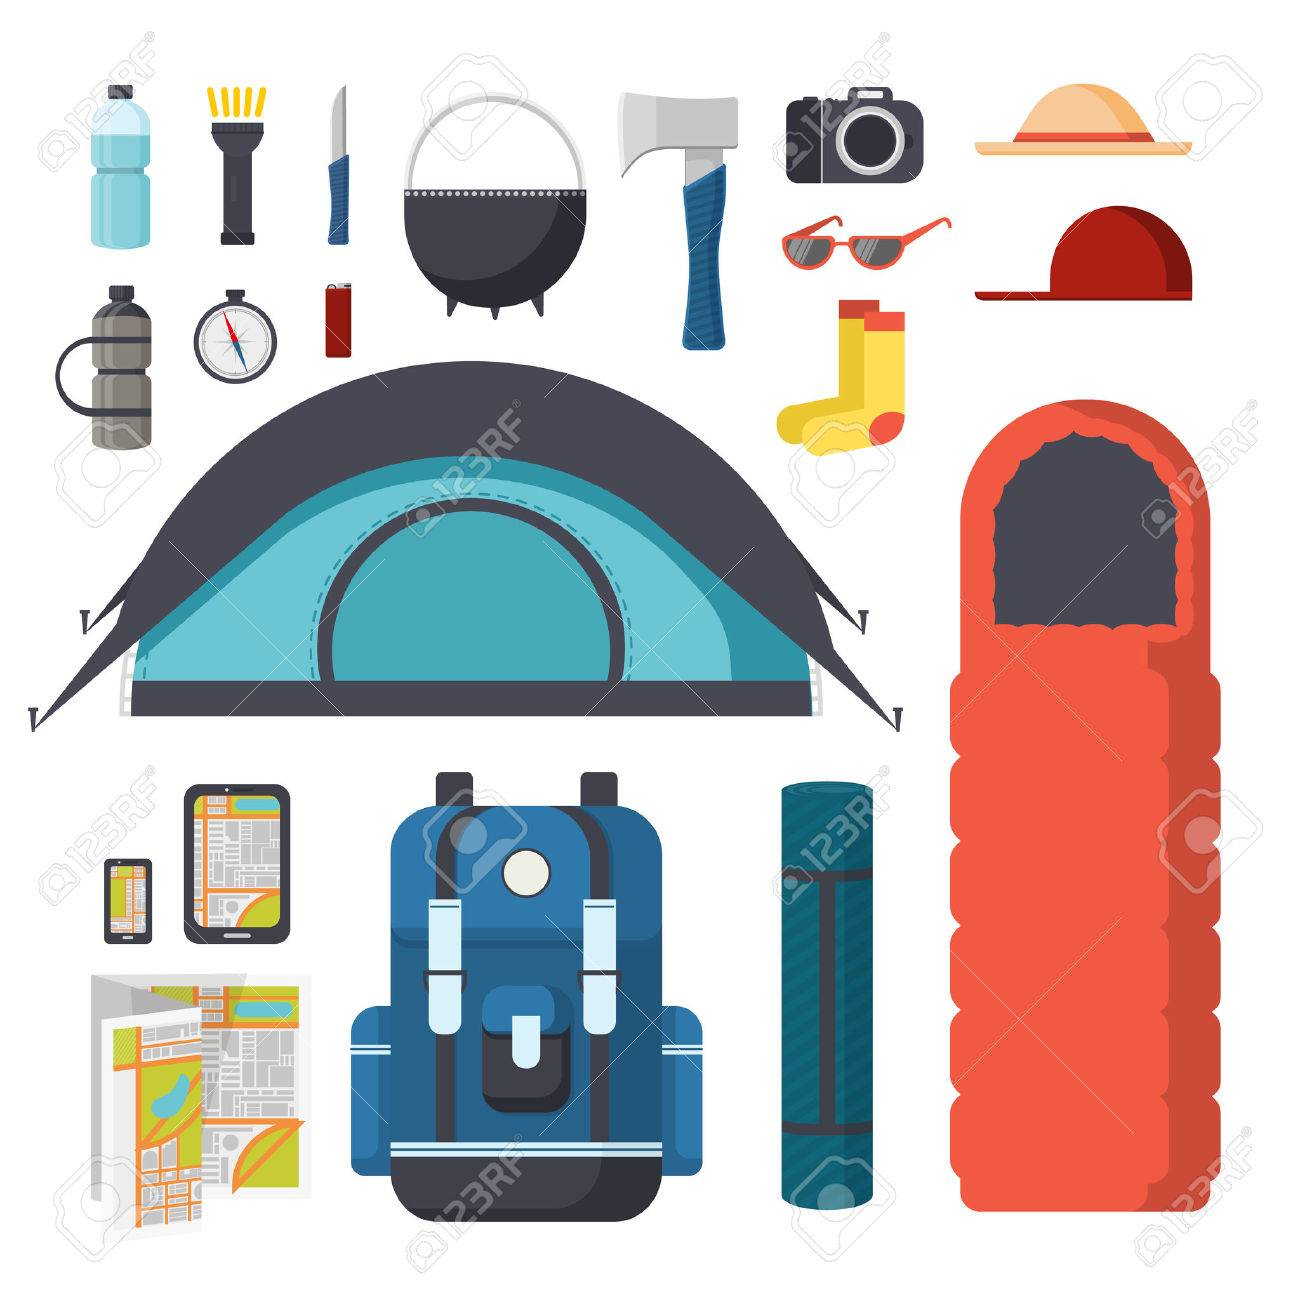 Collection of items for hiking and c&ing. Traveler Set - tent sleeping bag  sc 1 st  123RF.com & Collection Of Items For Hiking And Camping. Traveler Set - Tent ...